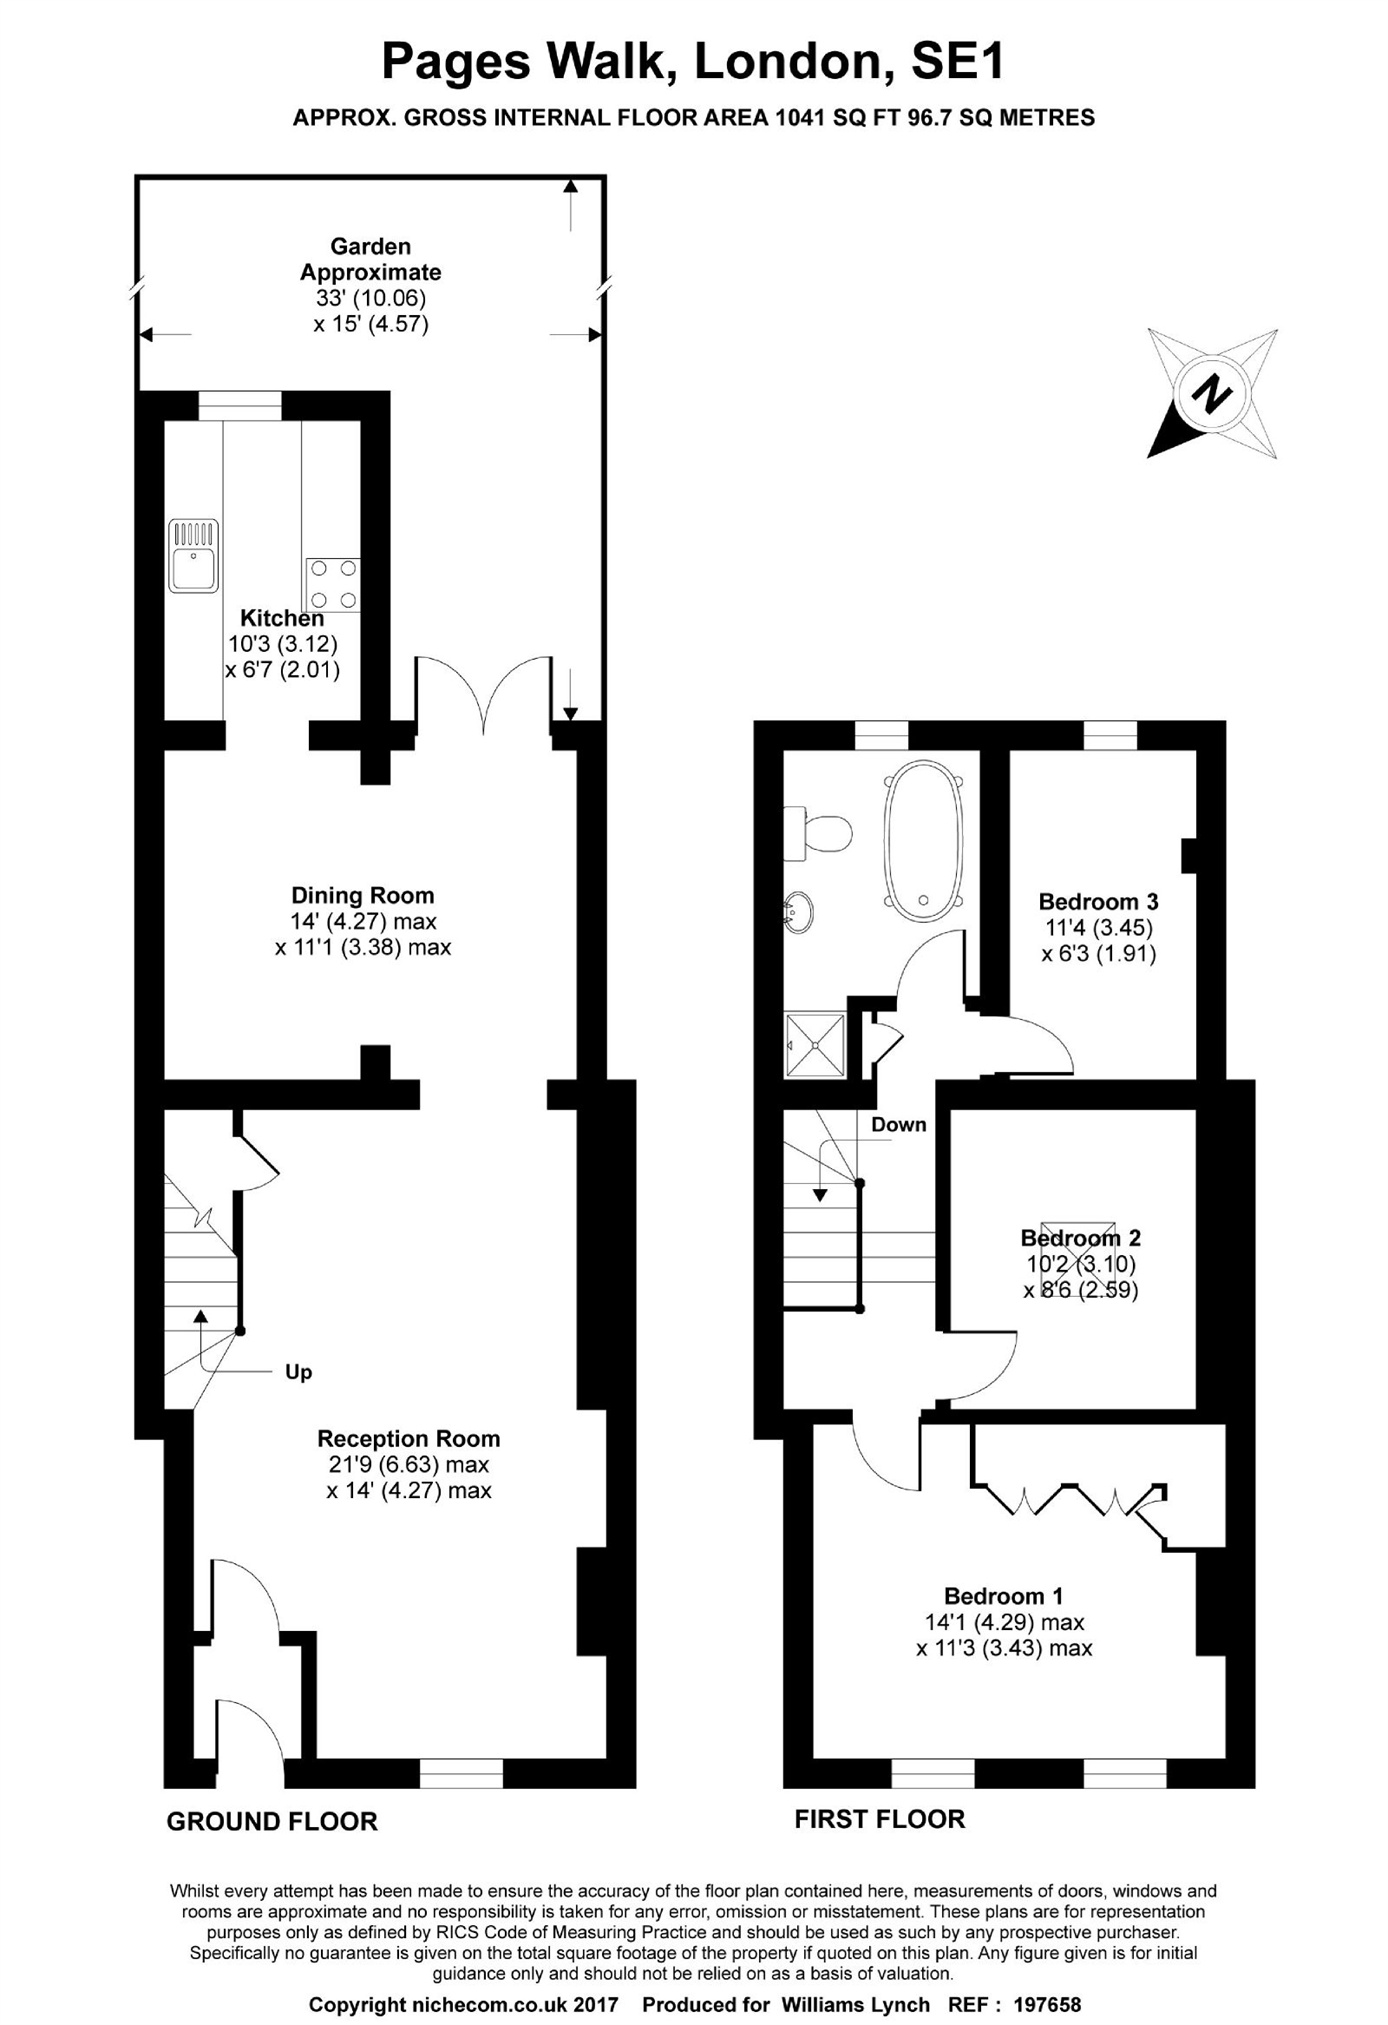 Property Details - Williams Lynch